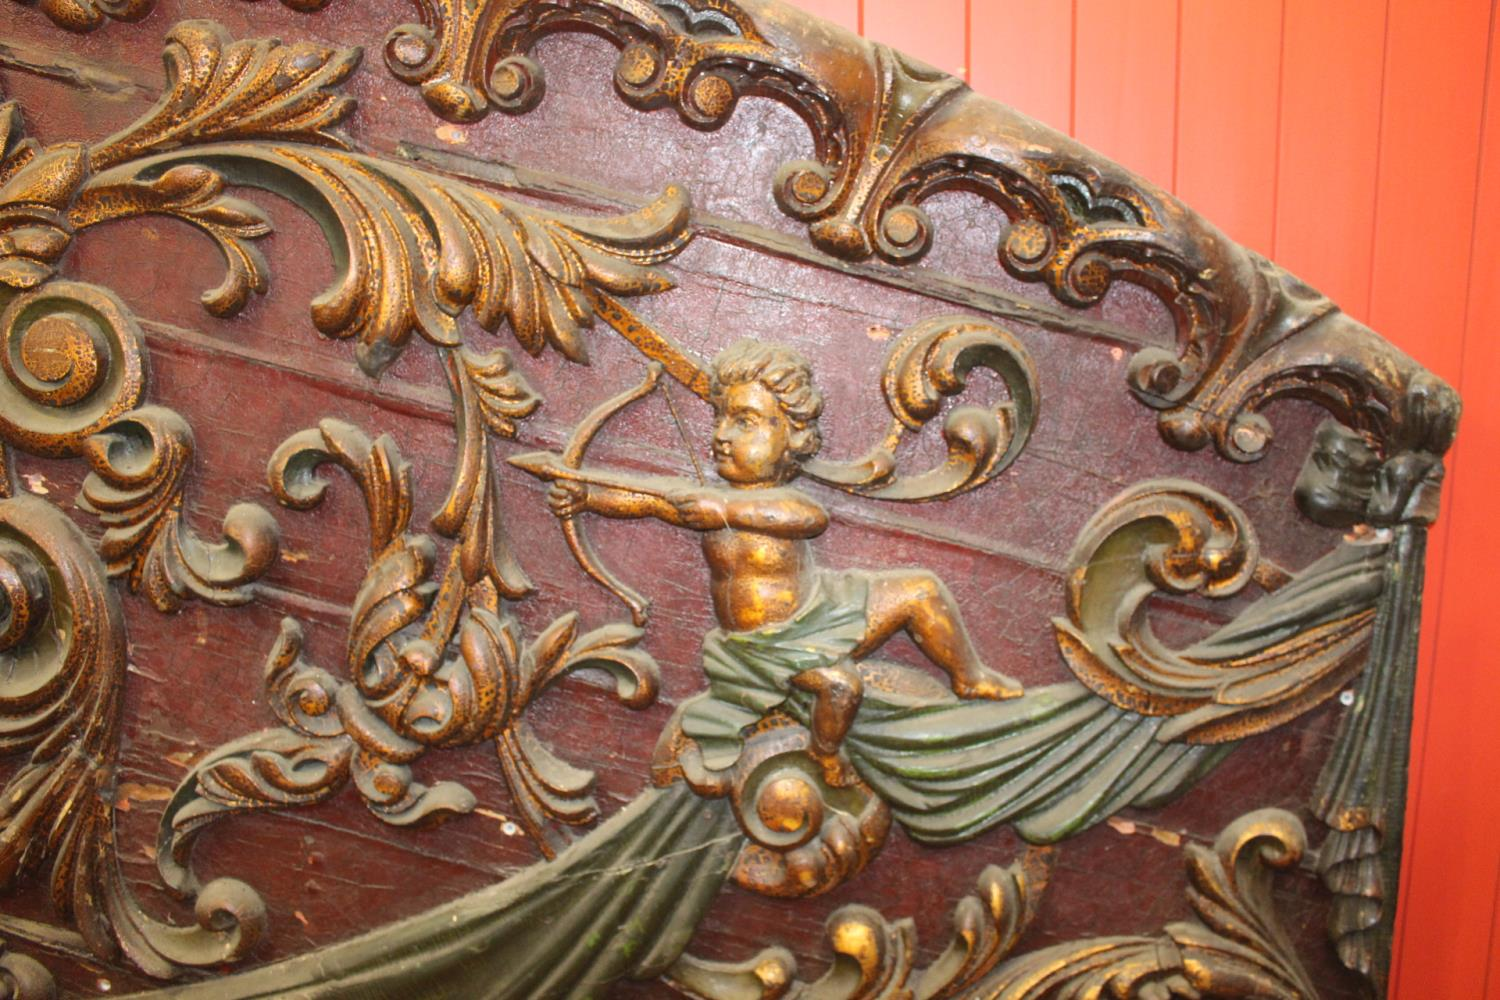 19th C. Two part fairground wagon panel - Image 3 of 3